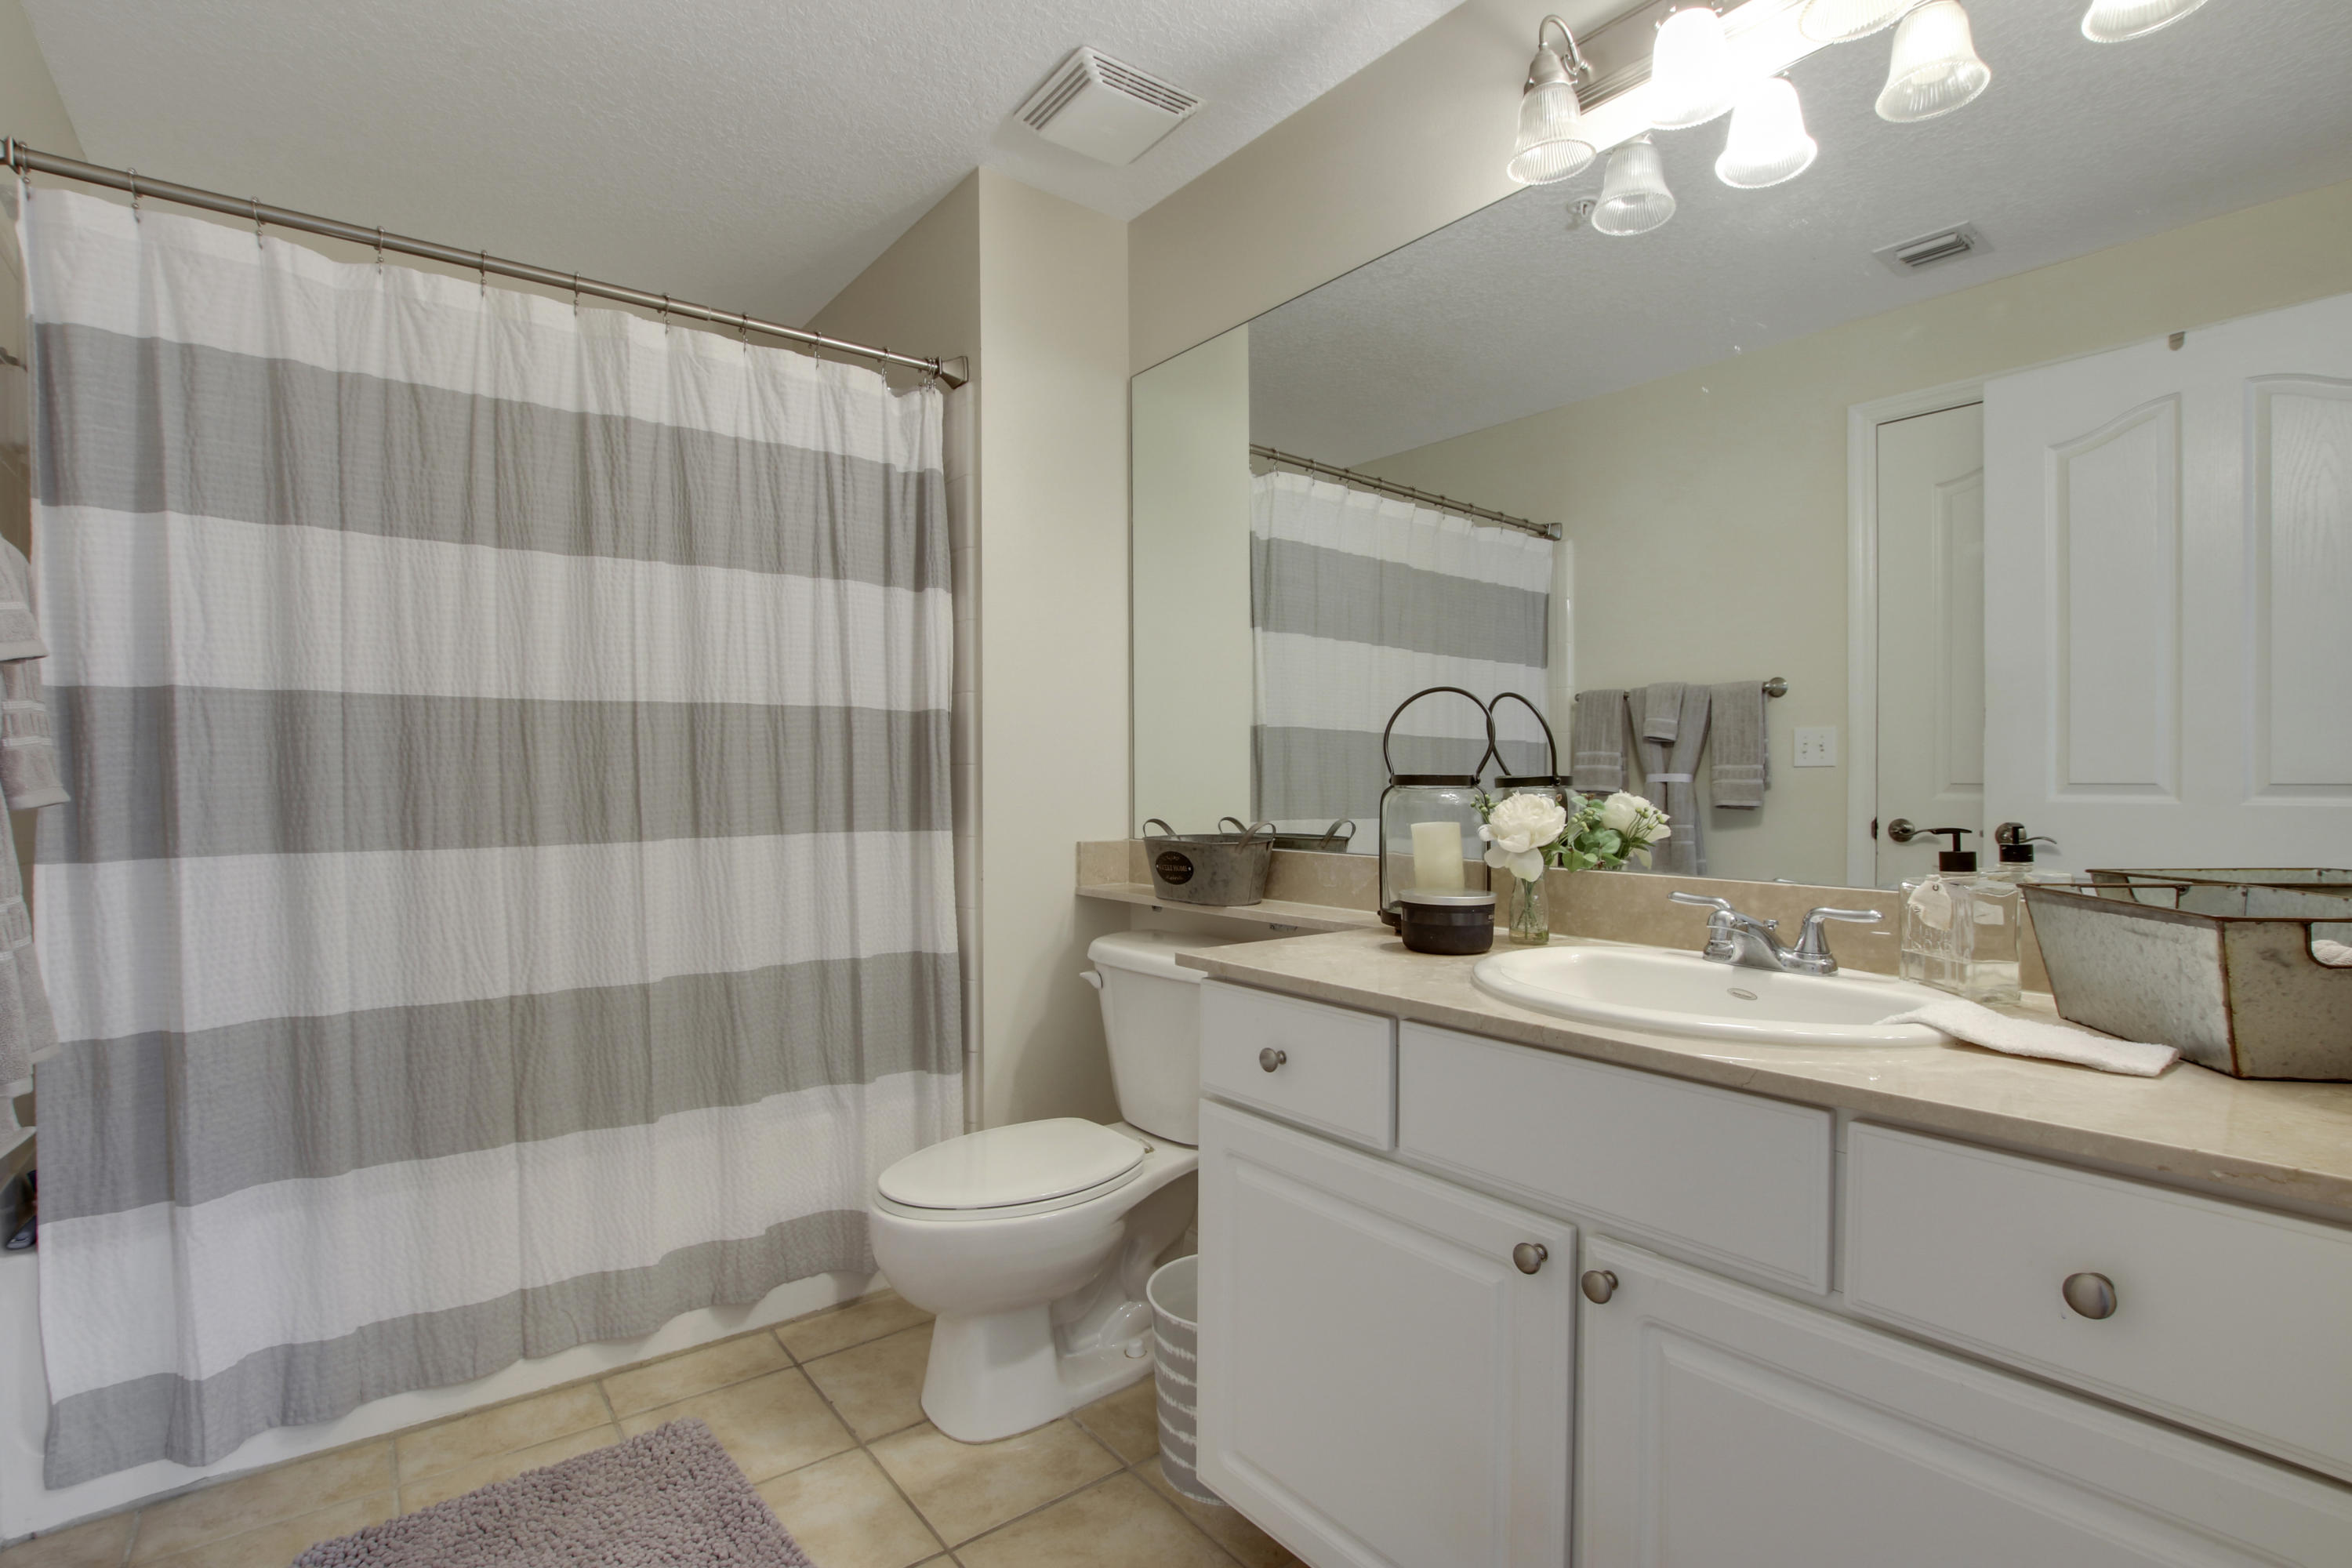 125 Galicia Way 103  - Abacoa Homes - photo 14